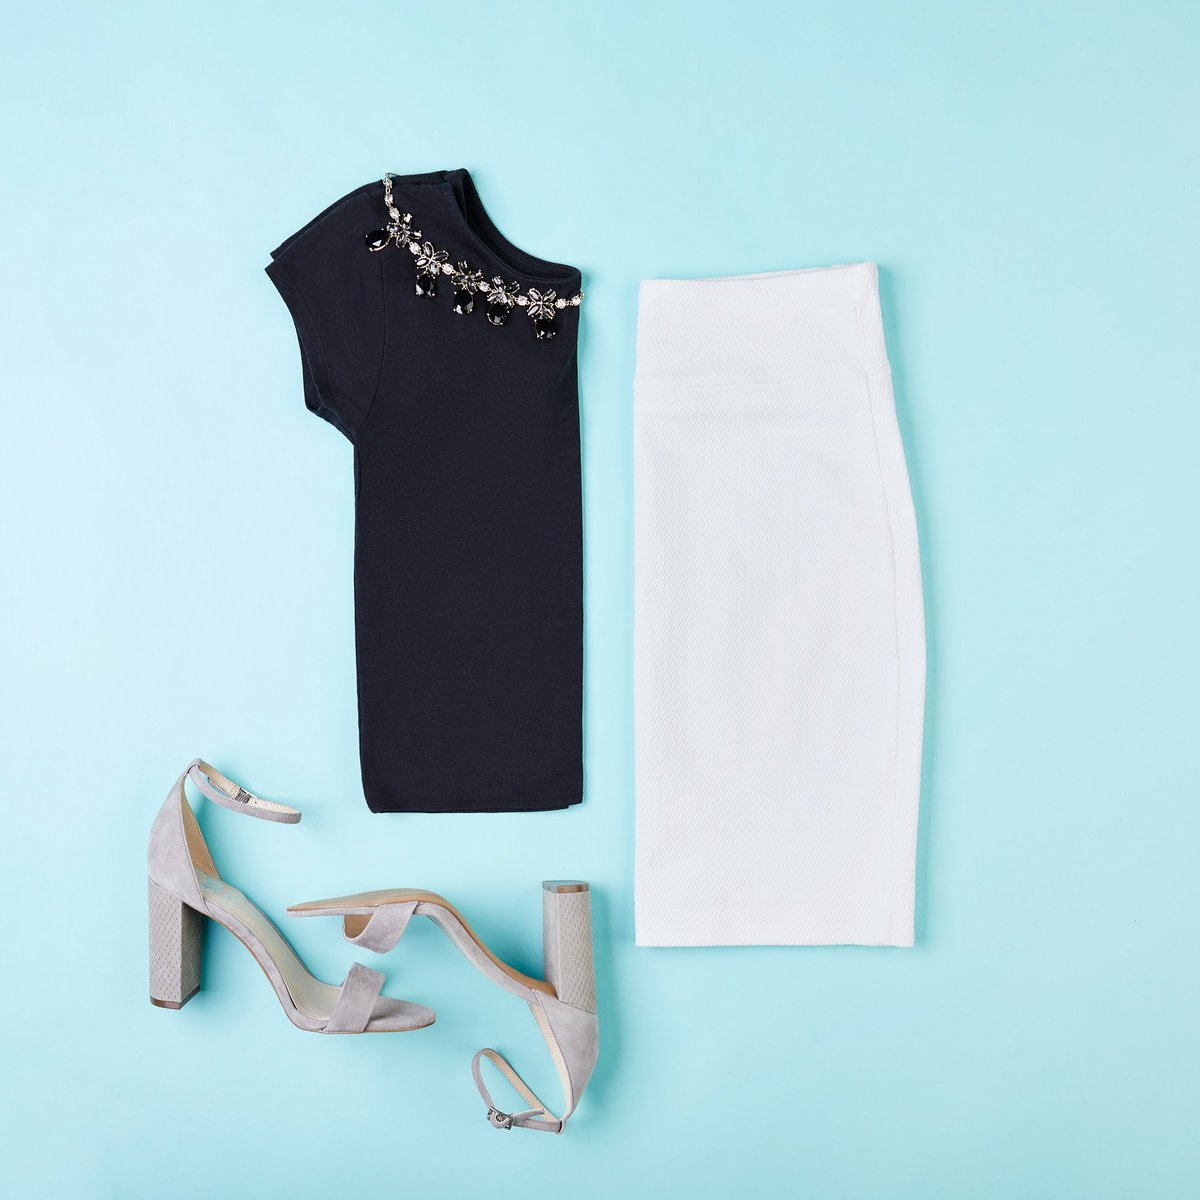 033beccf36 From desk to dinner. Stay ready with our textured #margaretm pencil skirt.  pic.twitter.com/AWWU7PLRoJ